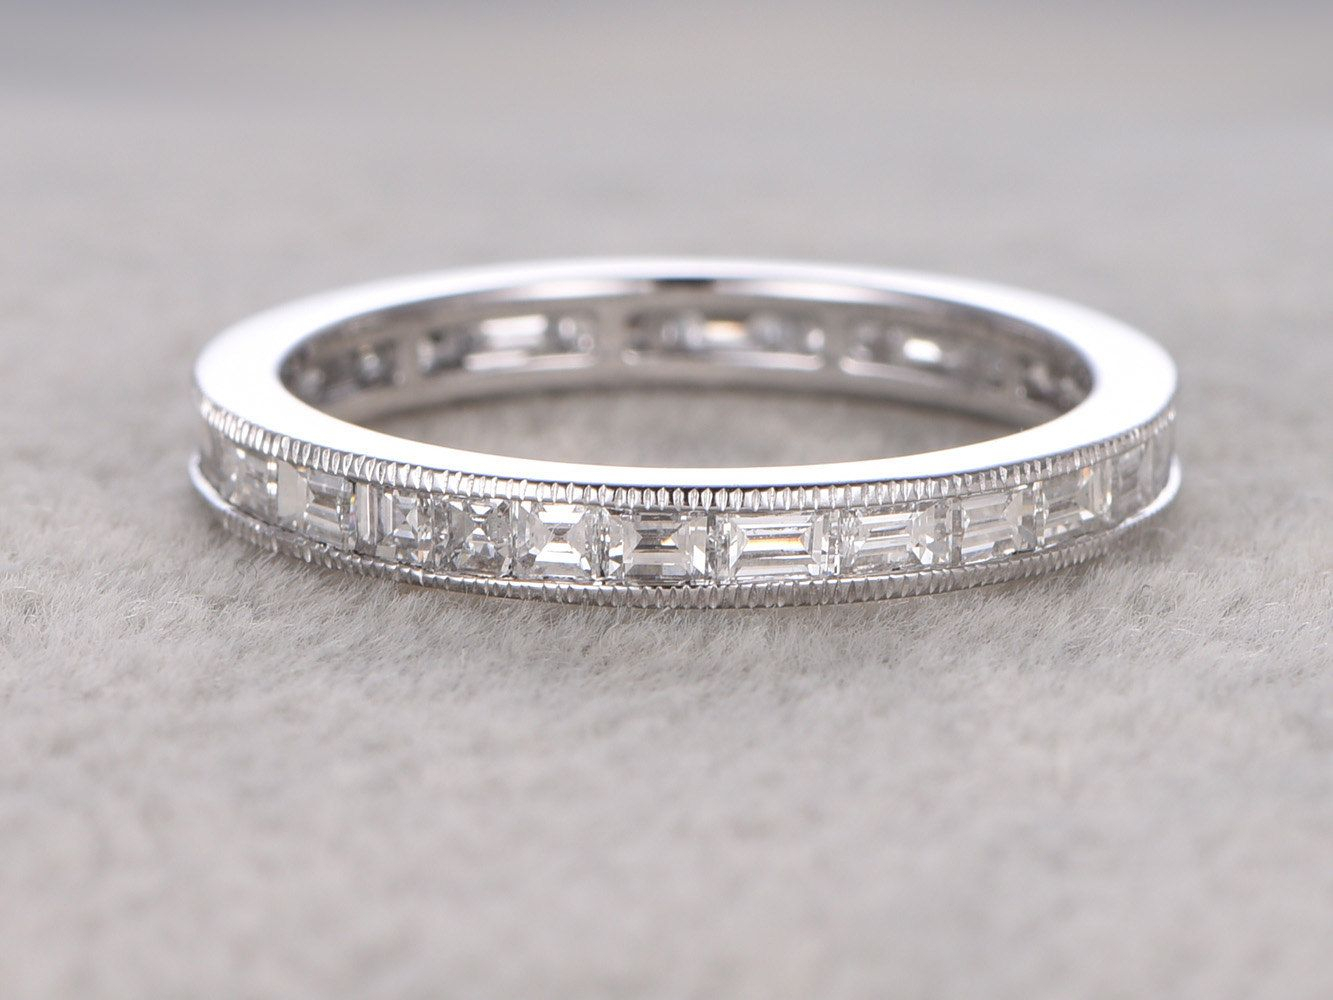 Baguette Diamond Wedding Rings For Her 14K White Gold Full With Most Recent Baguette Diamond Anniversary Bands In White Gold (View 14 of 25)